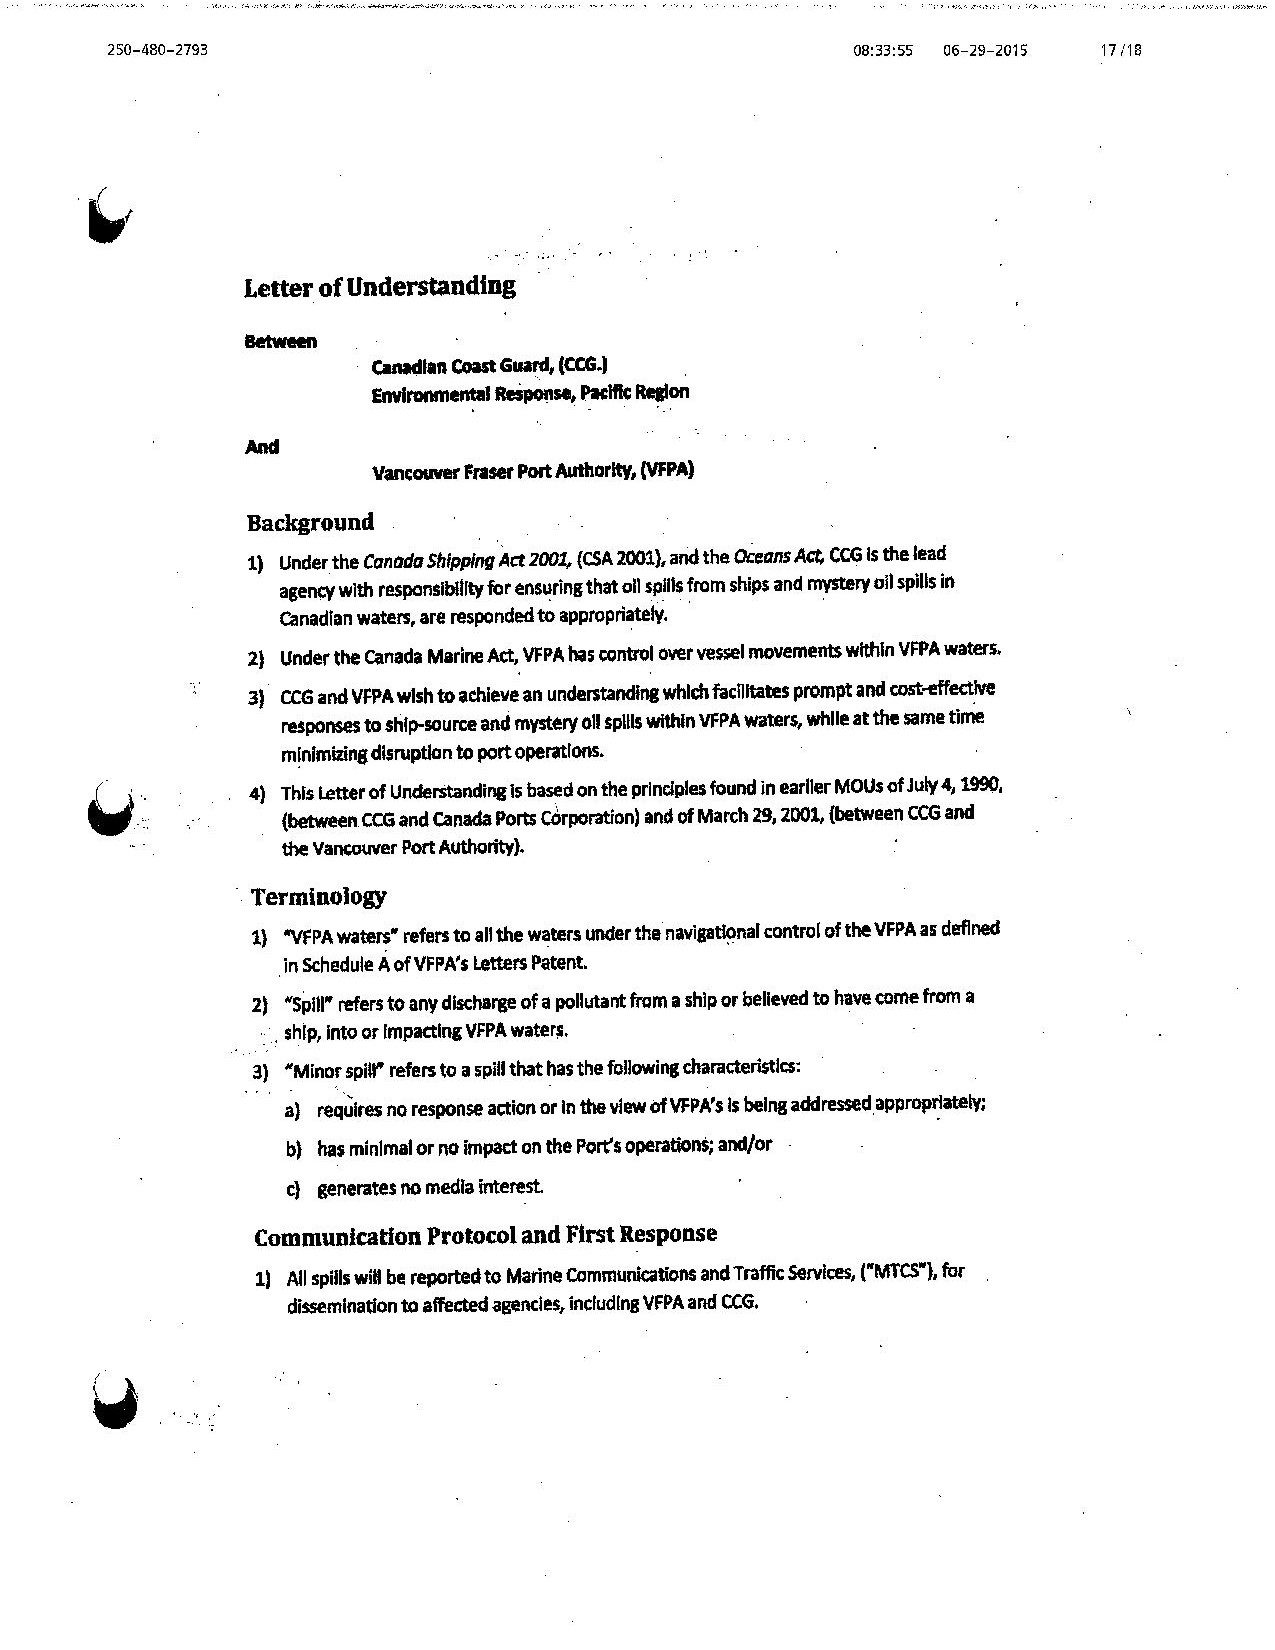 Scan of the 1st page of the Letter of Understanding between CCG and EC Western Region and the Vancouver Fraser Port Authority